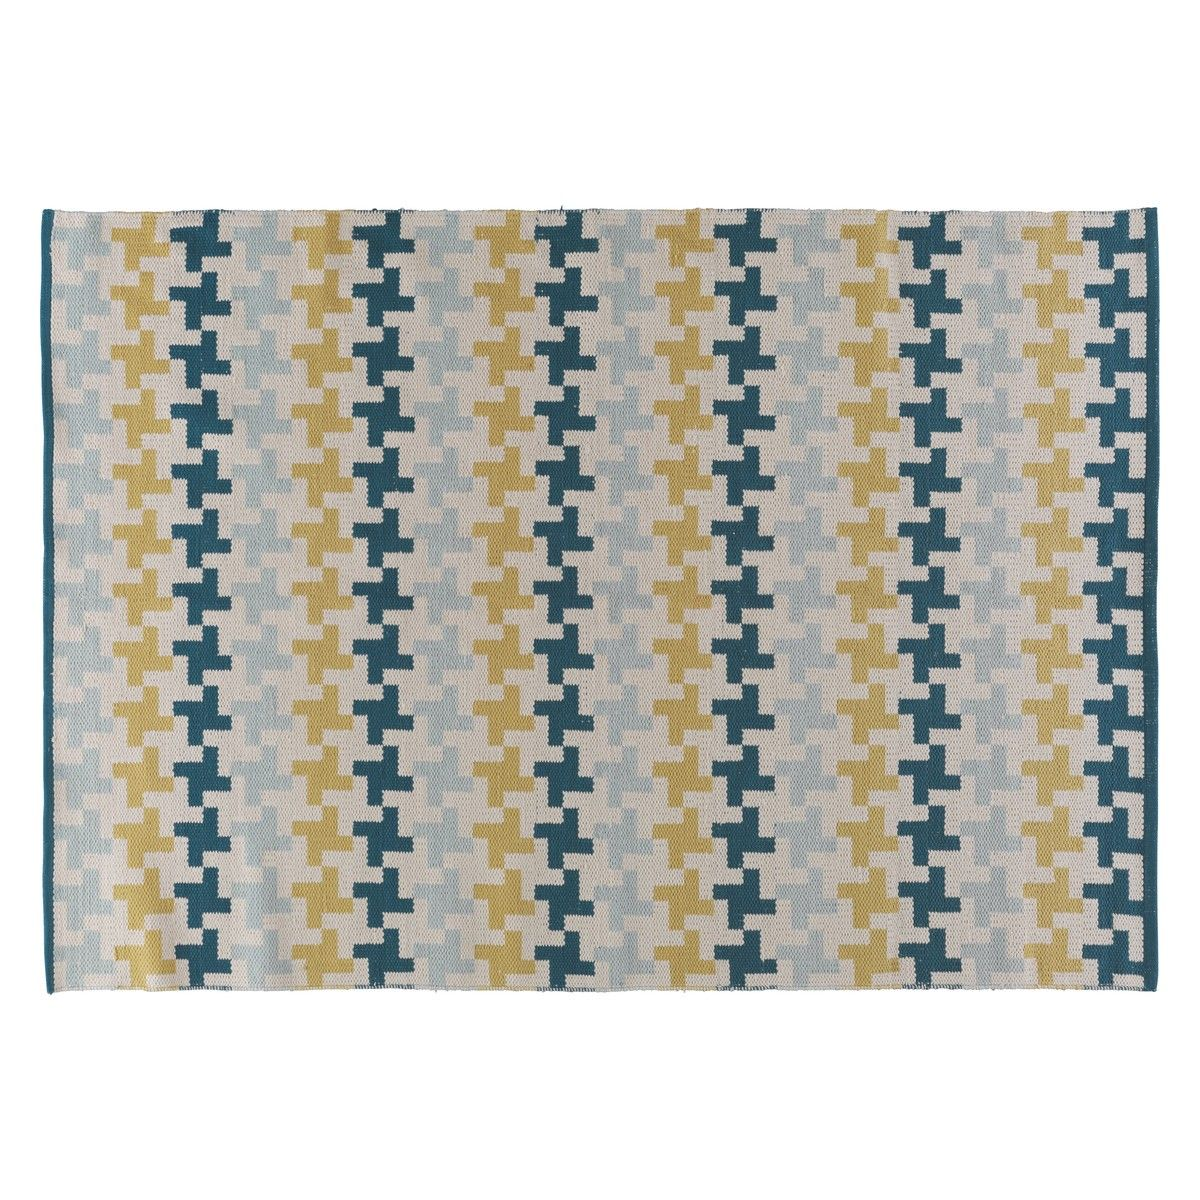 Blaine Medium Blue And Green Patterned Rug 140 X 200cm Now At Habitat Uk Small Round Rugsoffice Coloursrug